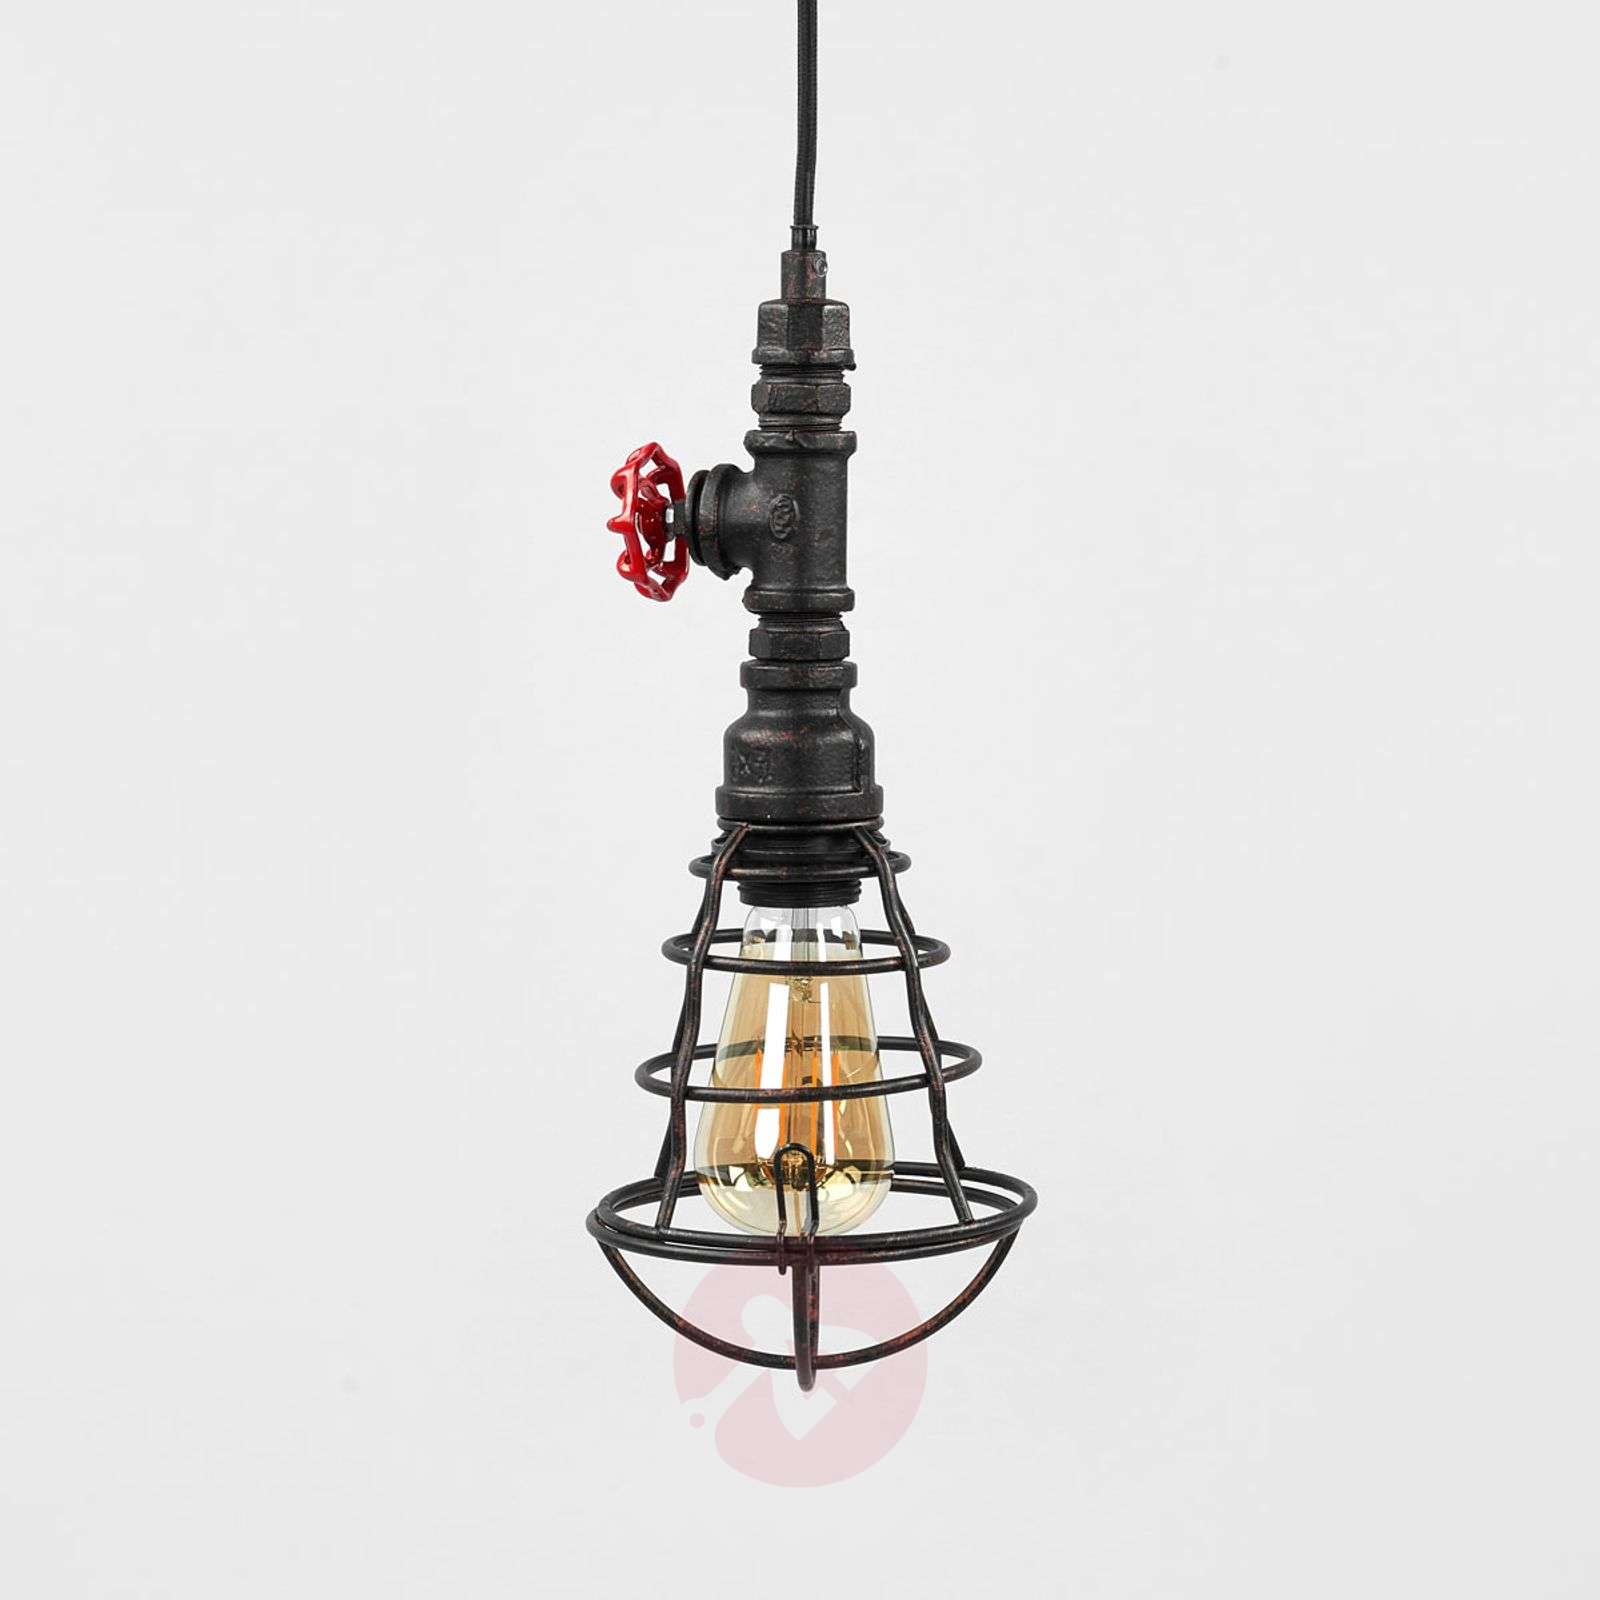 Tap pendant lamp with cage and one bulb-9634047-02